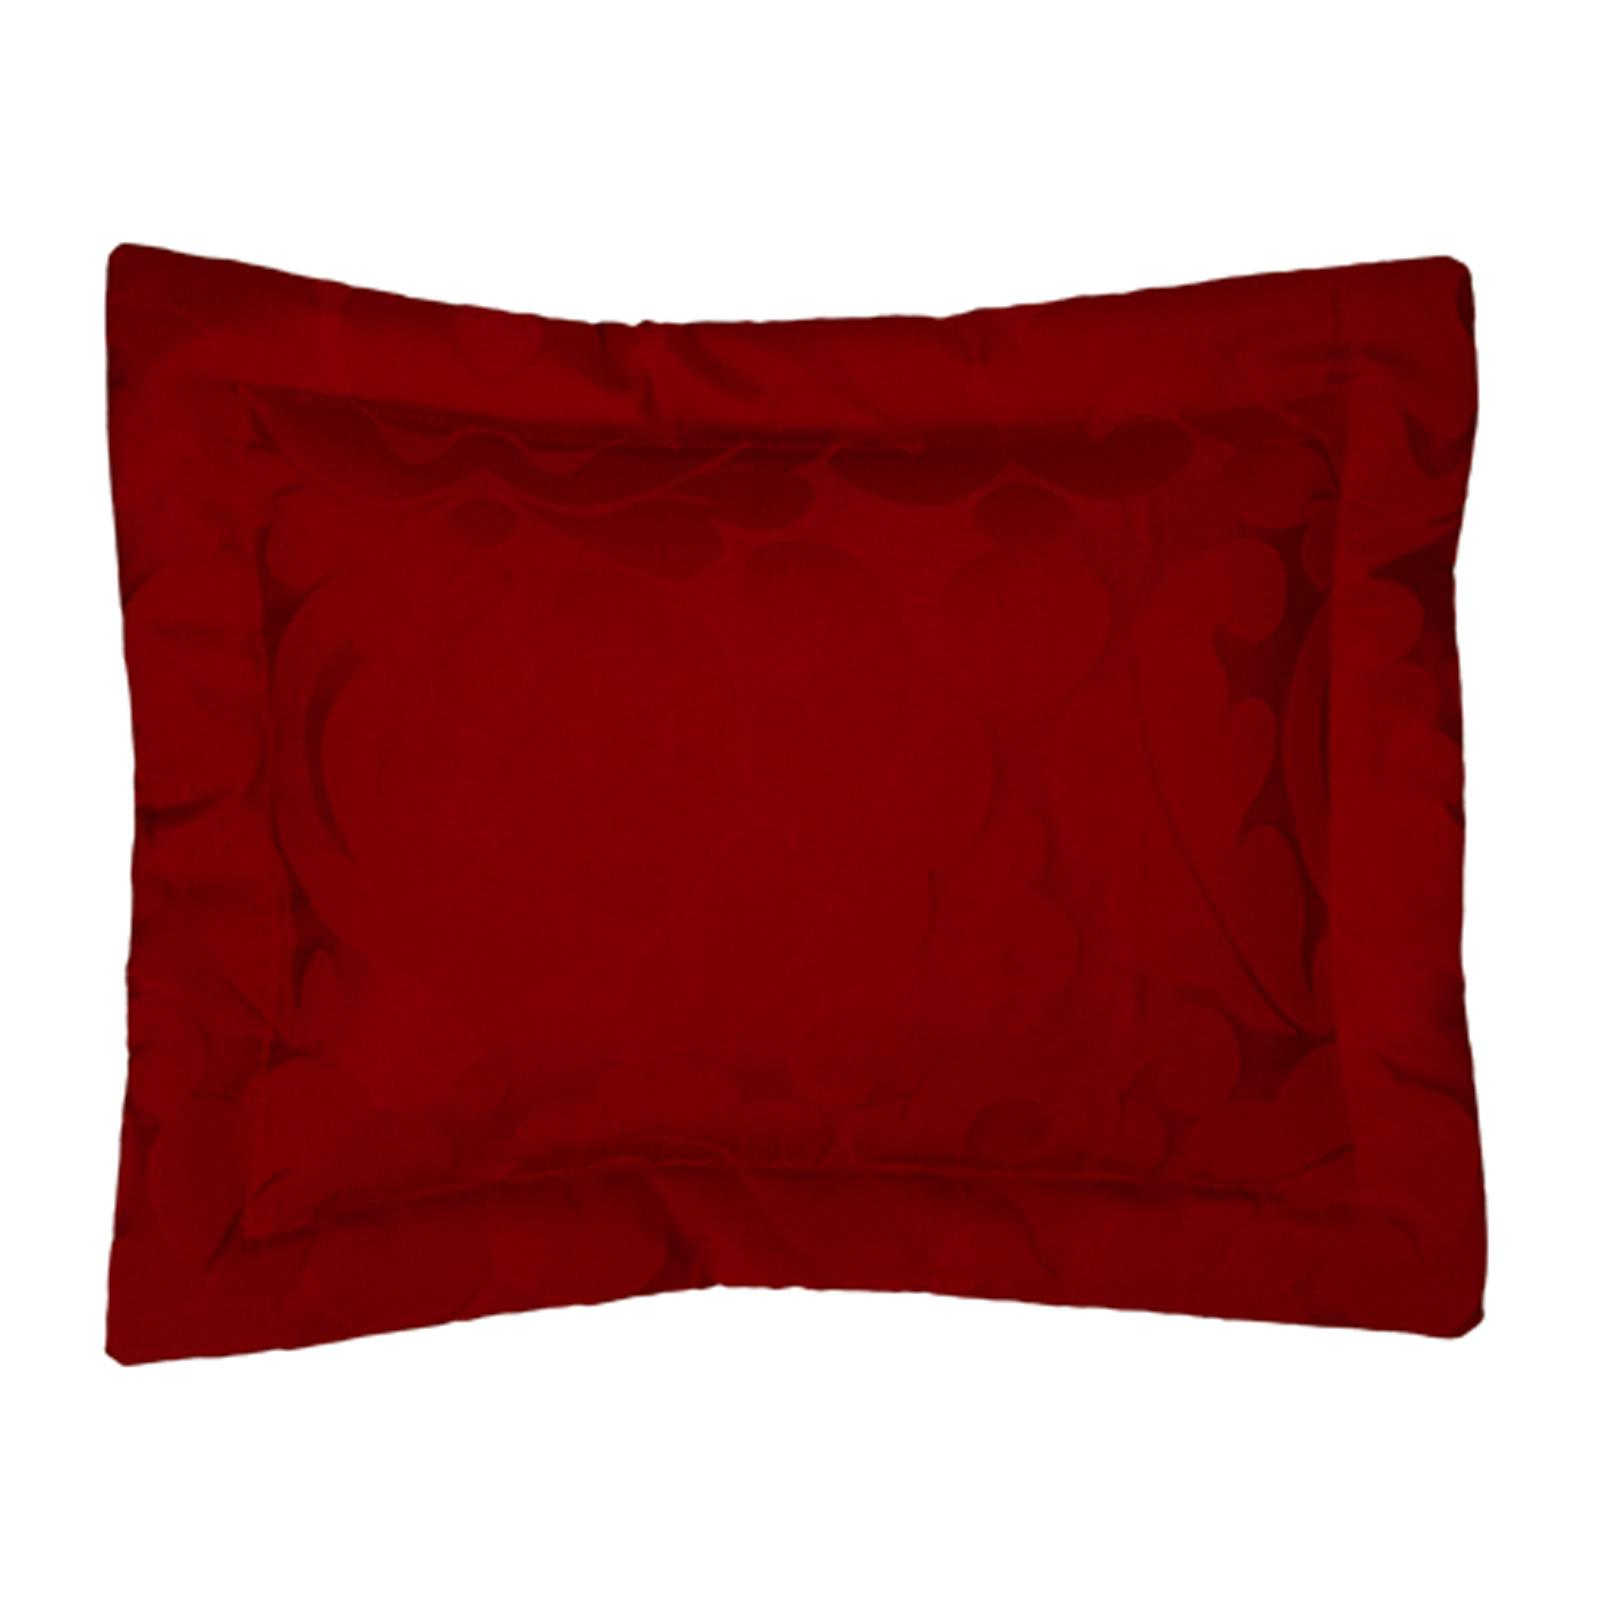 Bouvier Breakfast Pillow - Red by Thomasville At Home - BO2950-08